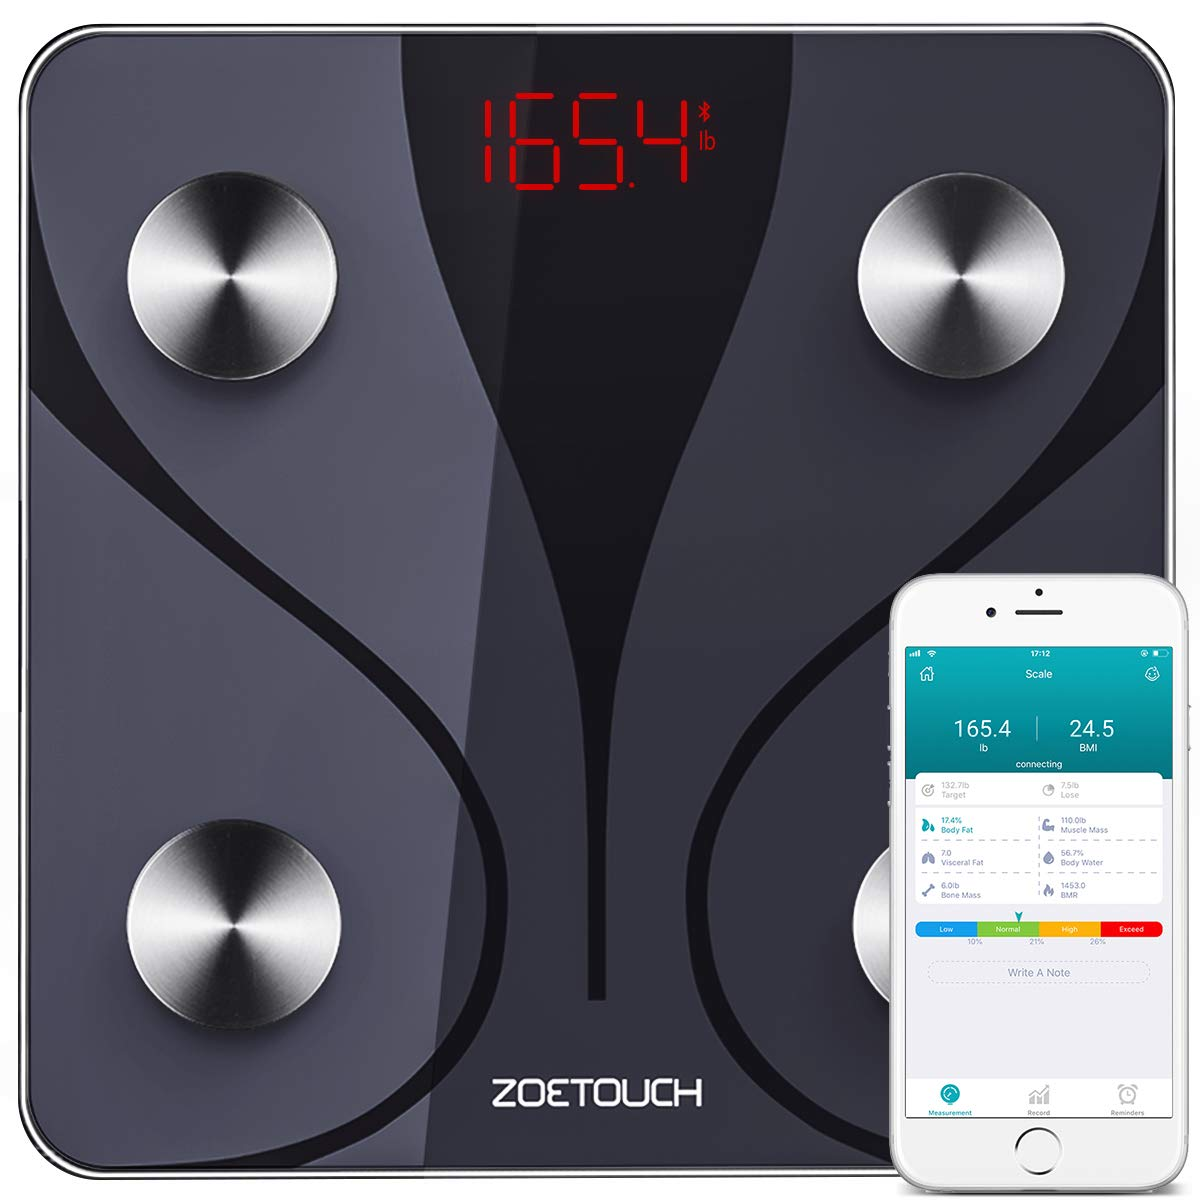 ZOETOUCH Bluetooth Body Fat Scale with iOS & Android App, Smart Digital Bathroom Weight Scale, Body Composition Monitor - Black